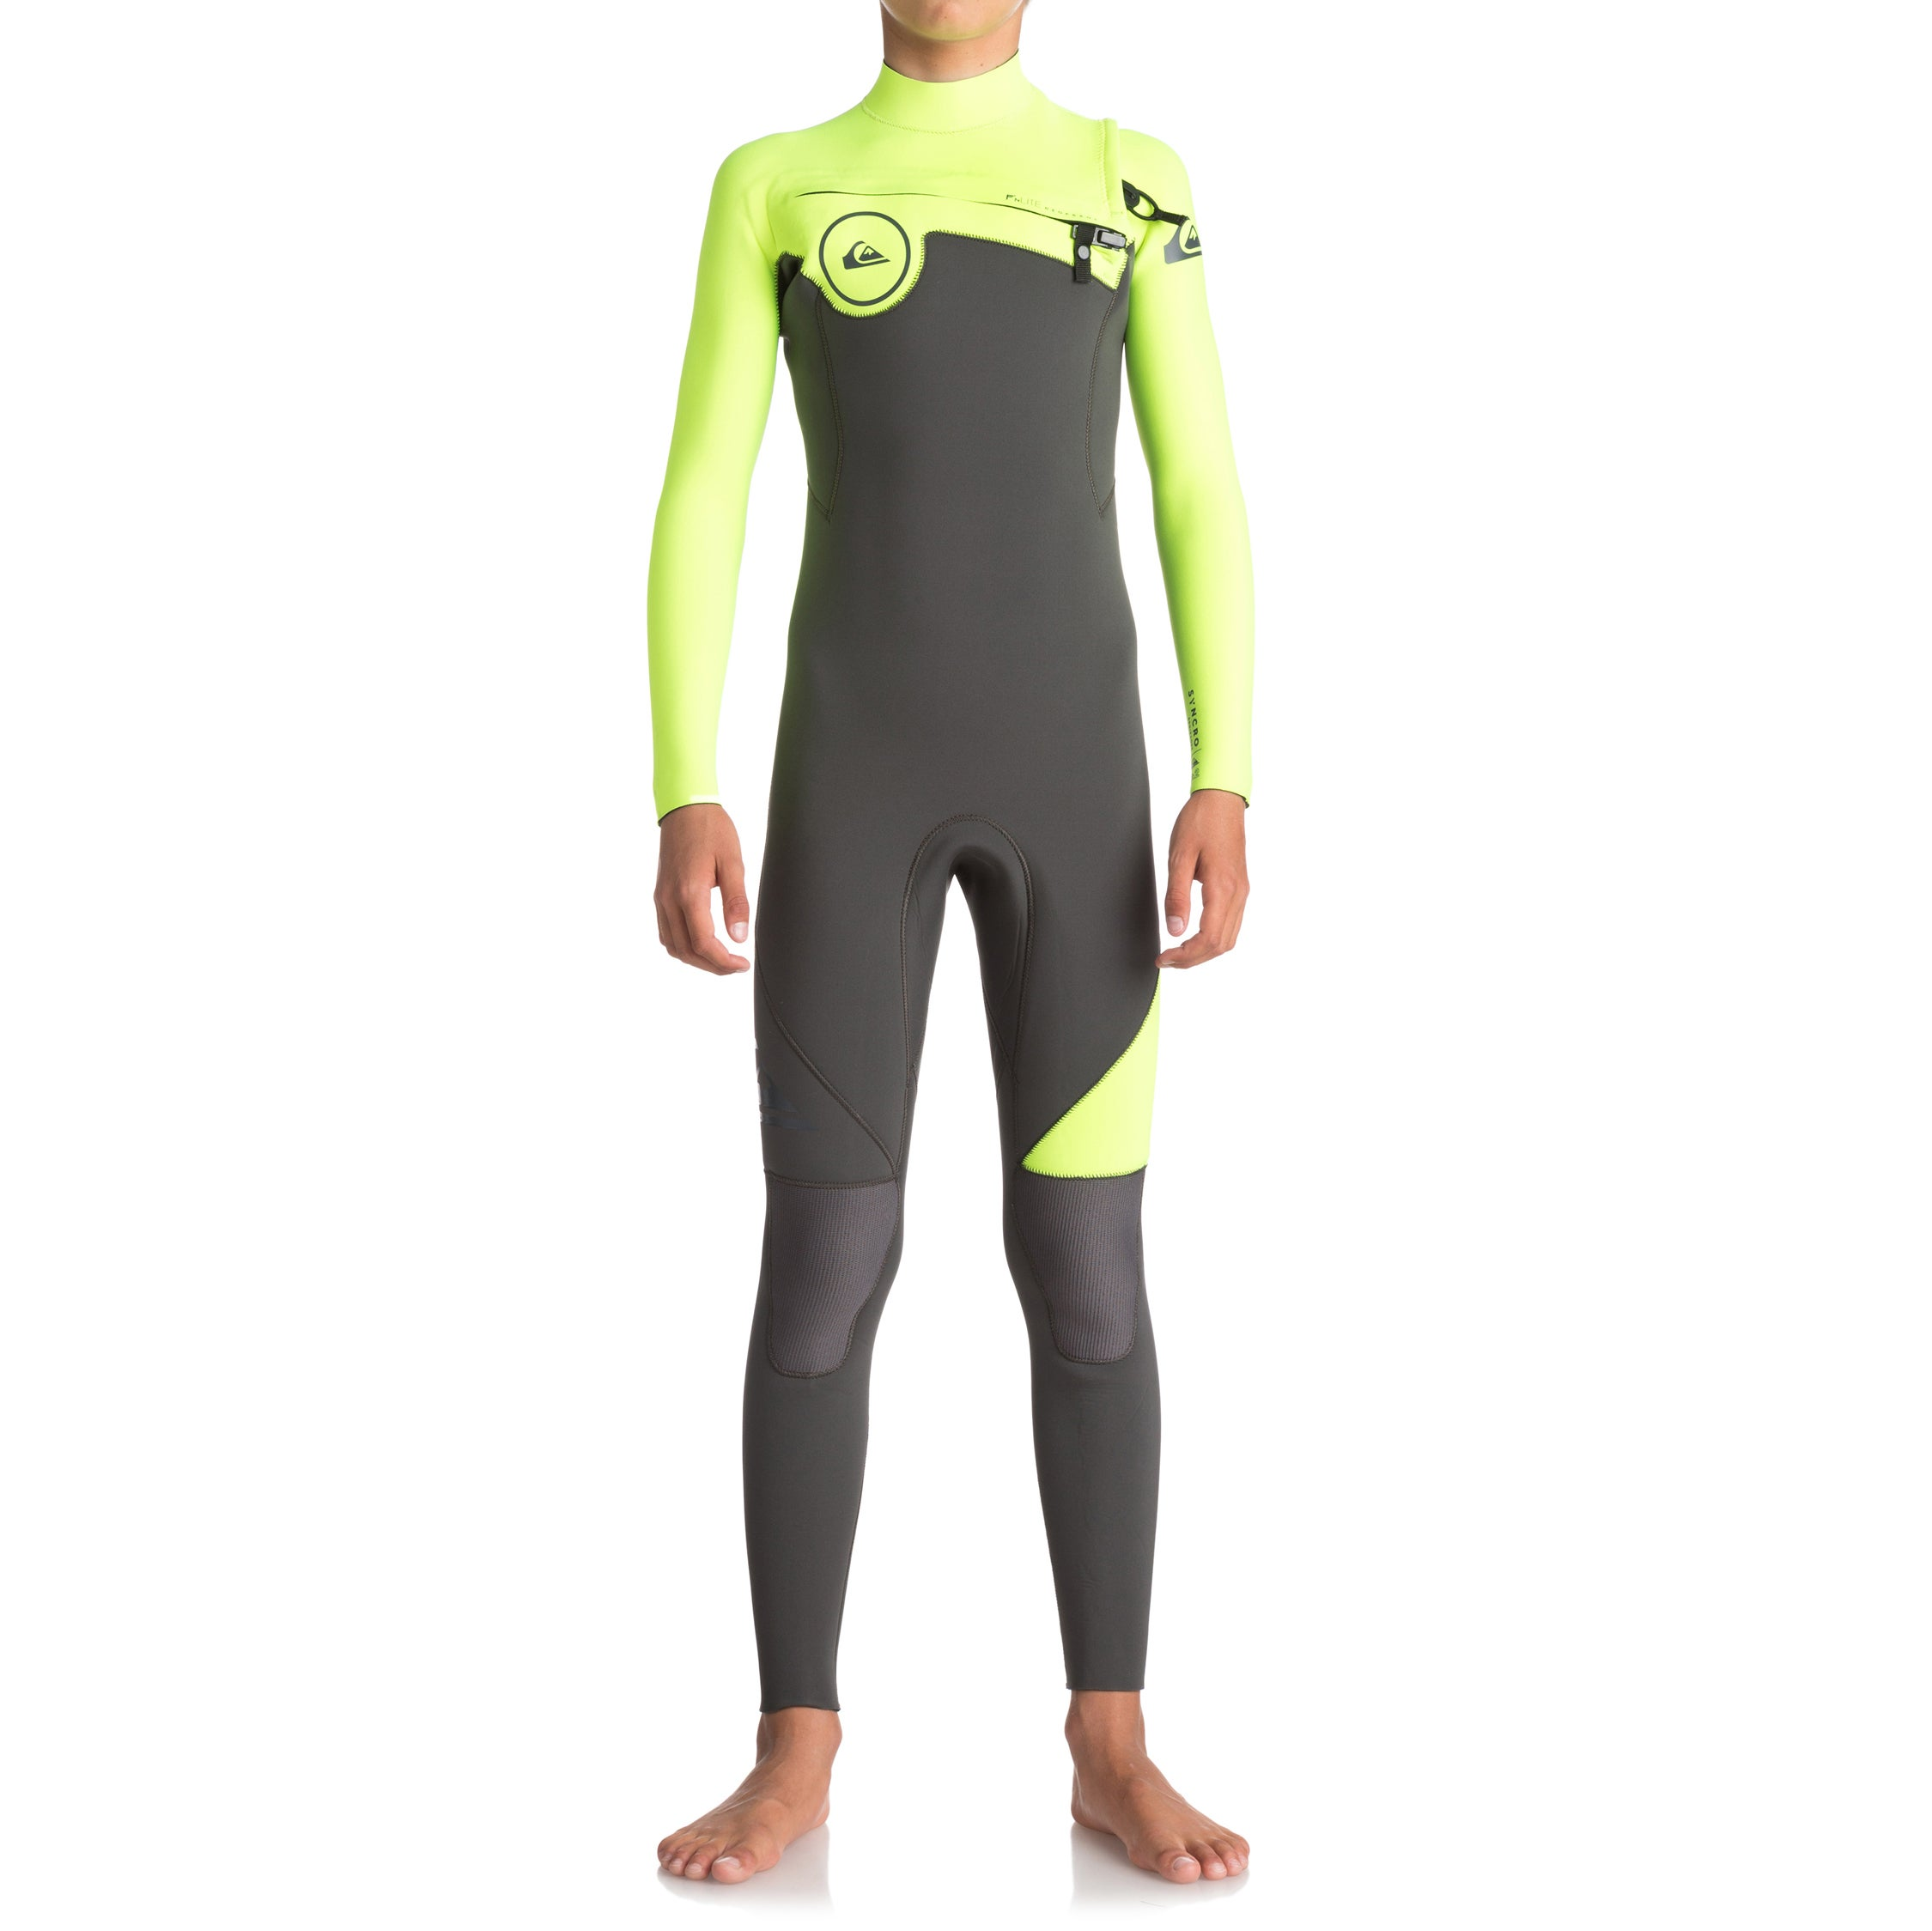 Quiksilver Syncro 3/2mm 2018 Chest Zip Wetsuit - Jet Black/ Safety Yellow